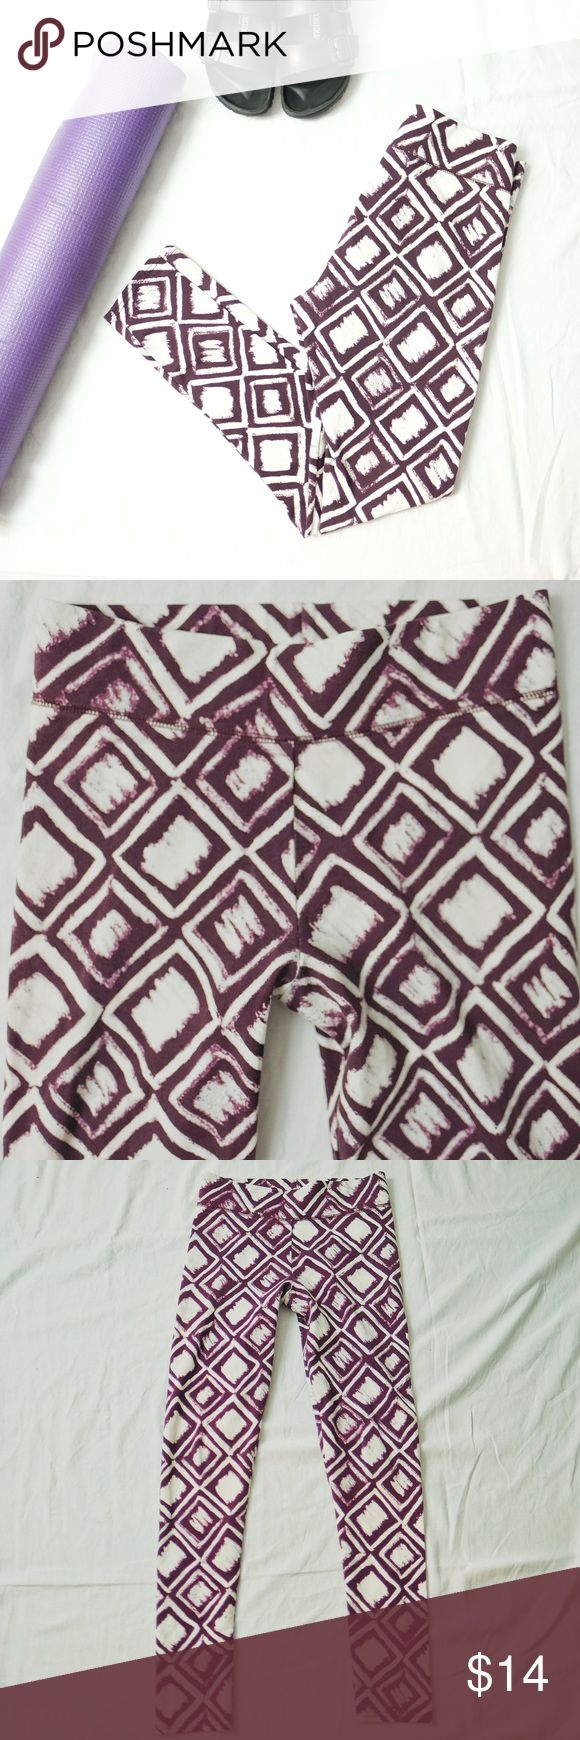 """Aerie White & Plum Abstract Yoga Leggings Pants Size small. White and purple square Abstract pattern. 92% cotton 8% elastane. Inseam: 28"""" waist across: 13"""". EUC comes from a pet free and smoke free home. Happy poshing! aerie Pants Leggings"""